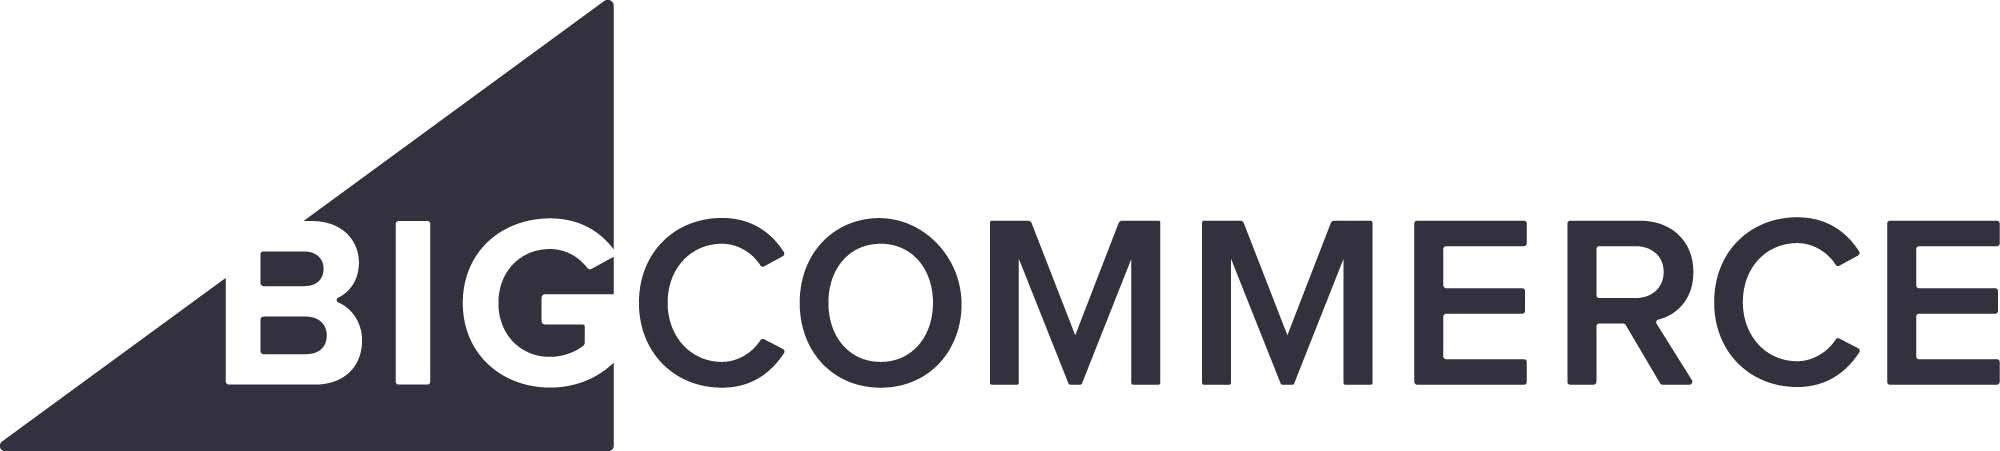 Bigcommerce first north american ecommerce platform to introduce bigcommerce first north american ecommerce platform to introduce symantec encryption everywhere for merchants worldwide business wire 1betcityfo Gallery